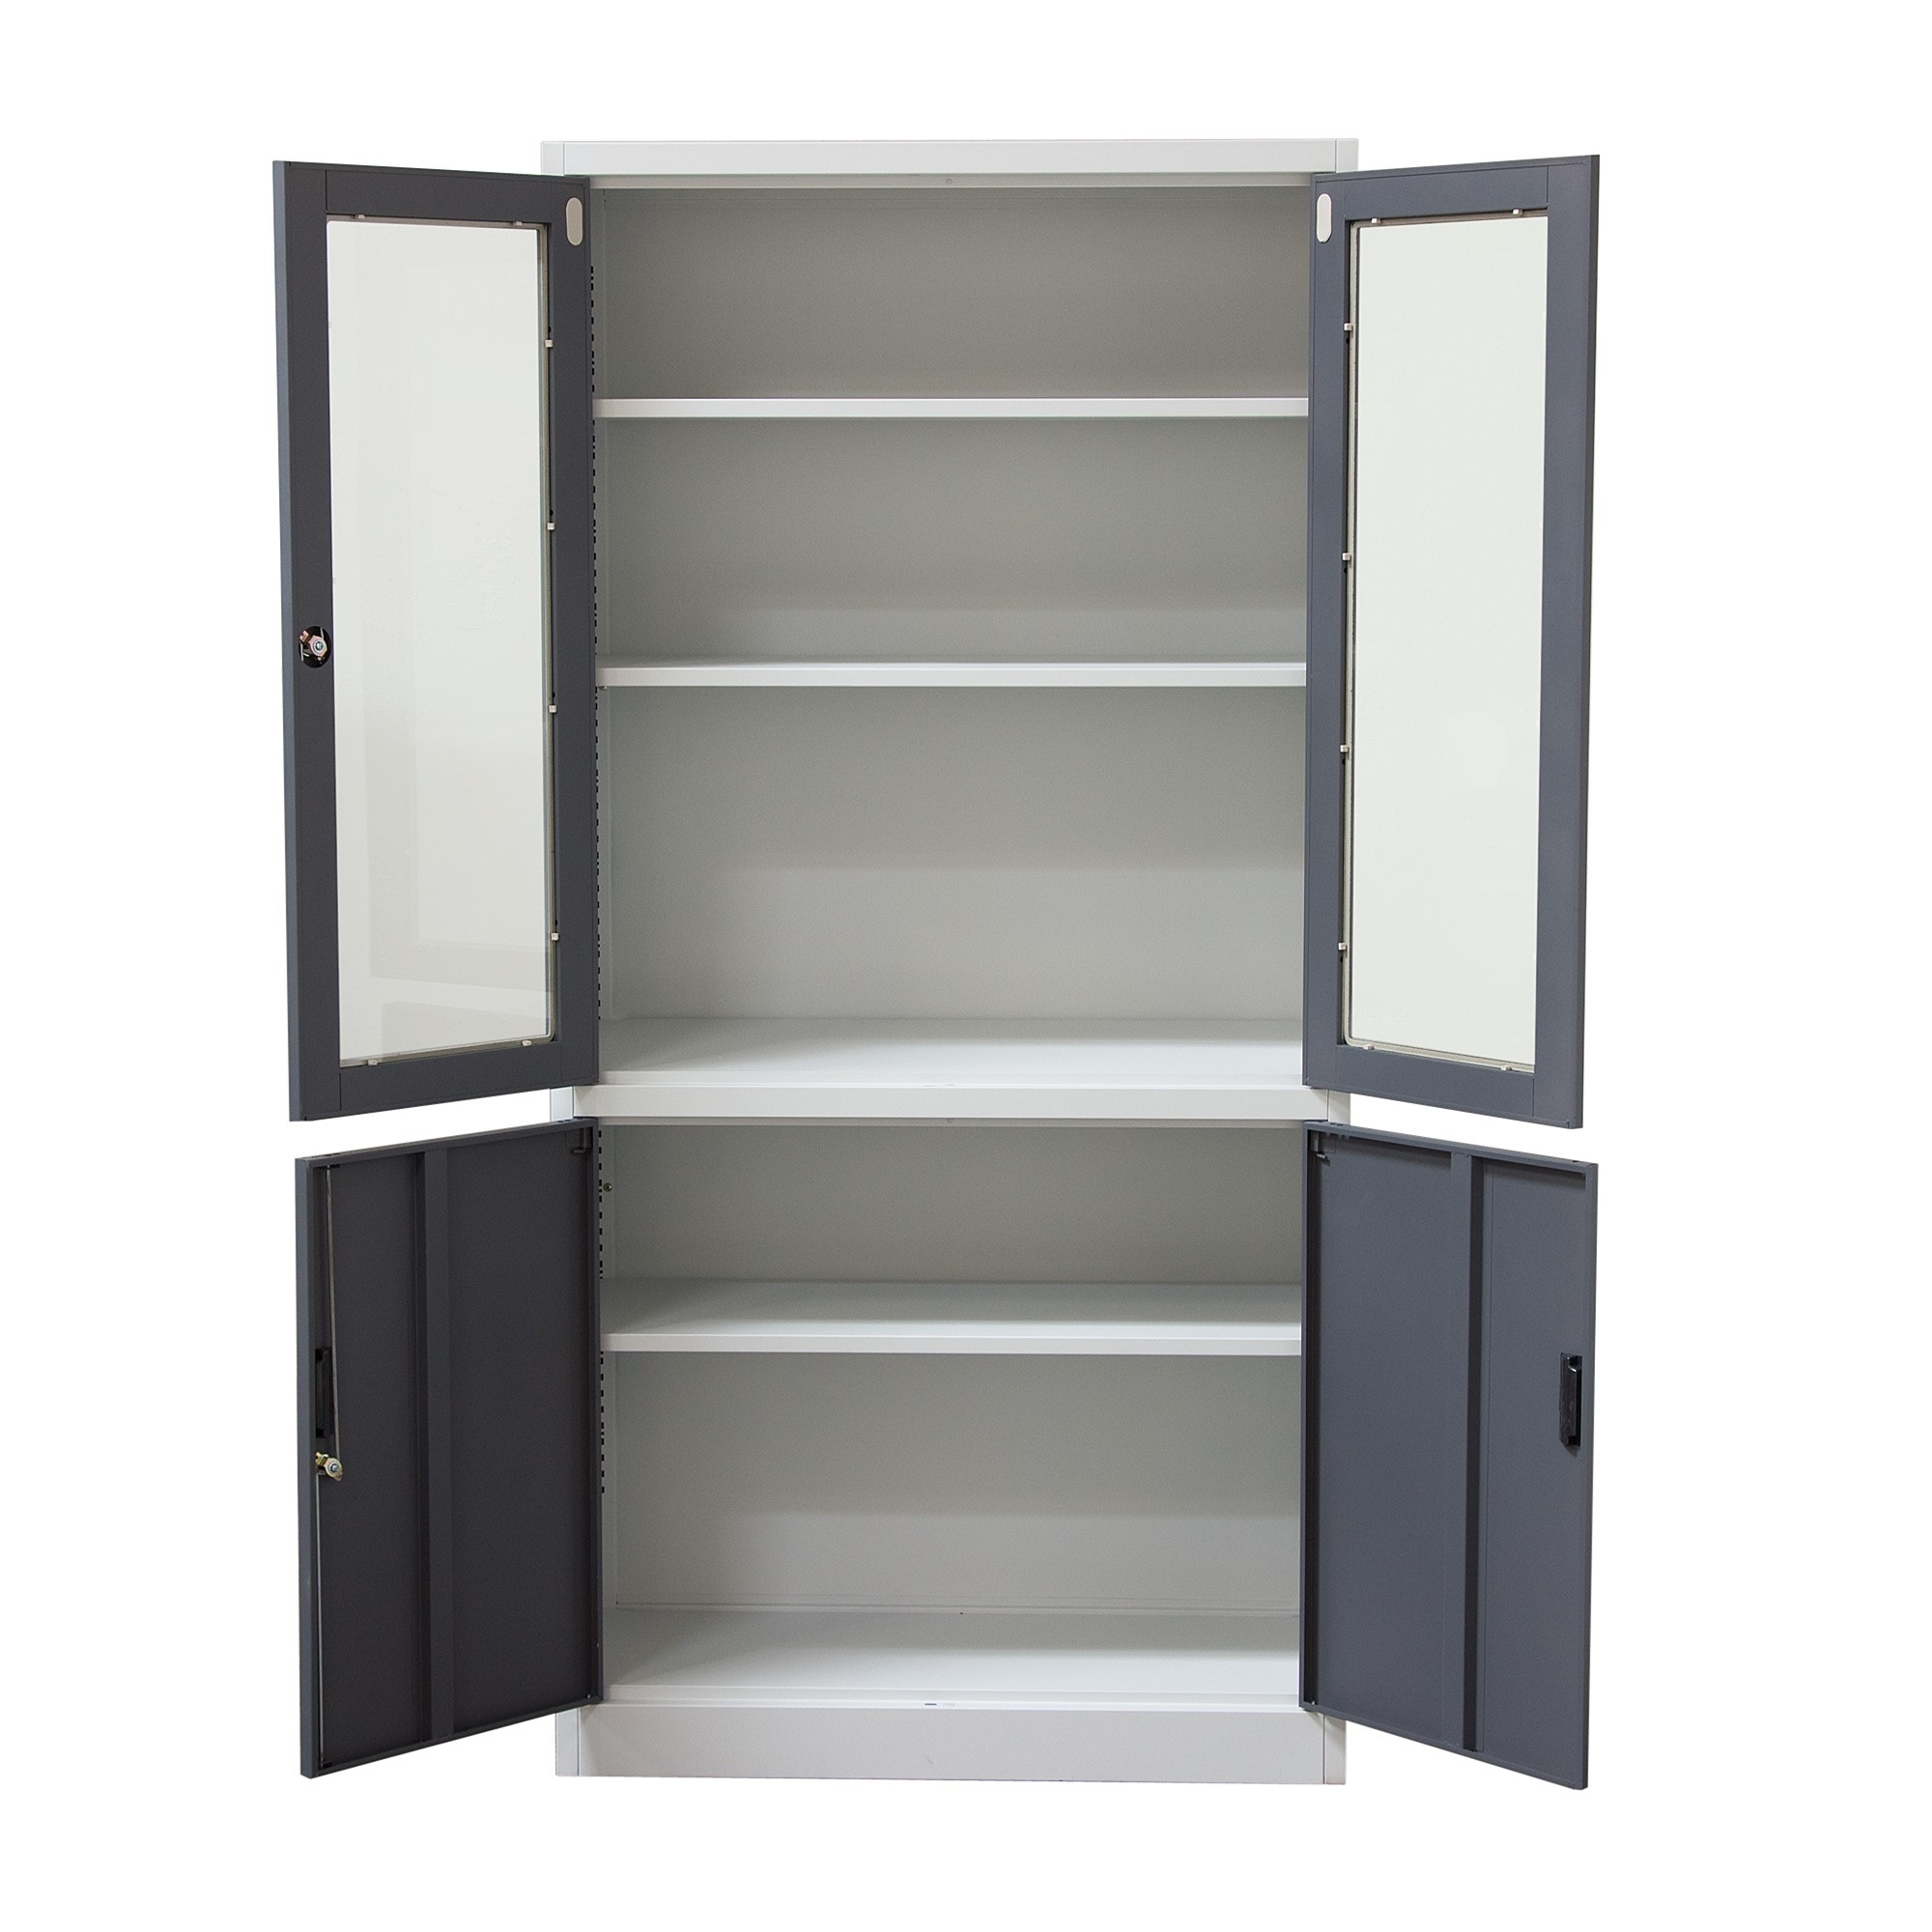 Most Recent Black Bookcases With Glass Doors Within Furniture Shelf Bookcase Sliding Glass Doors In White With Grey (View 8 of 15)